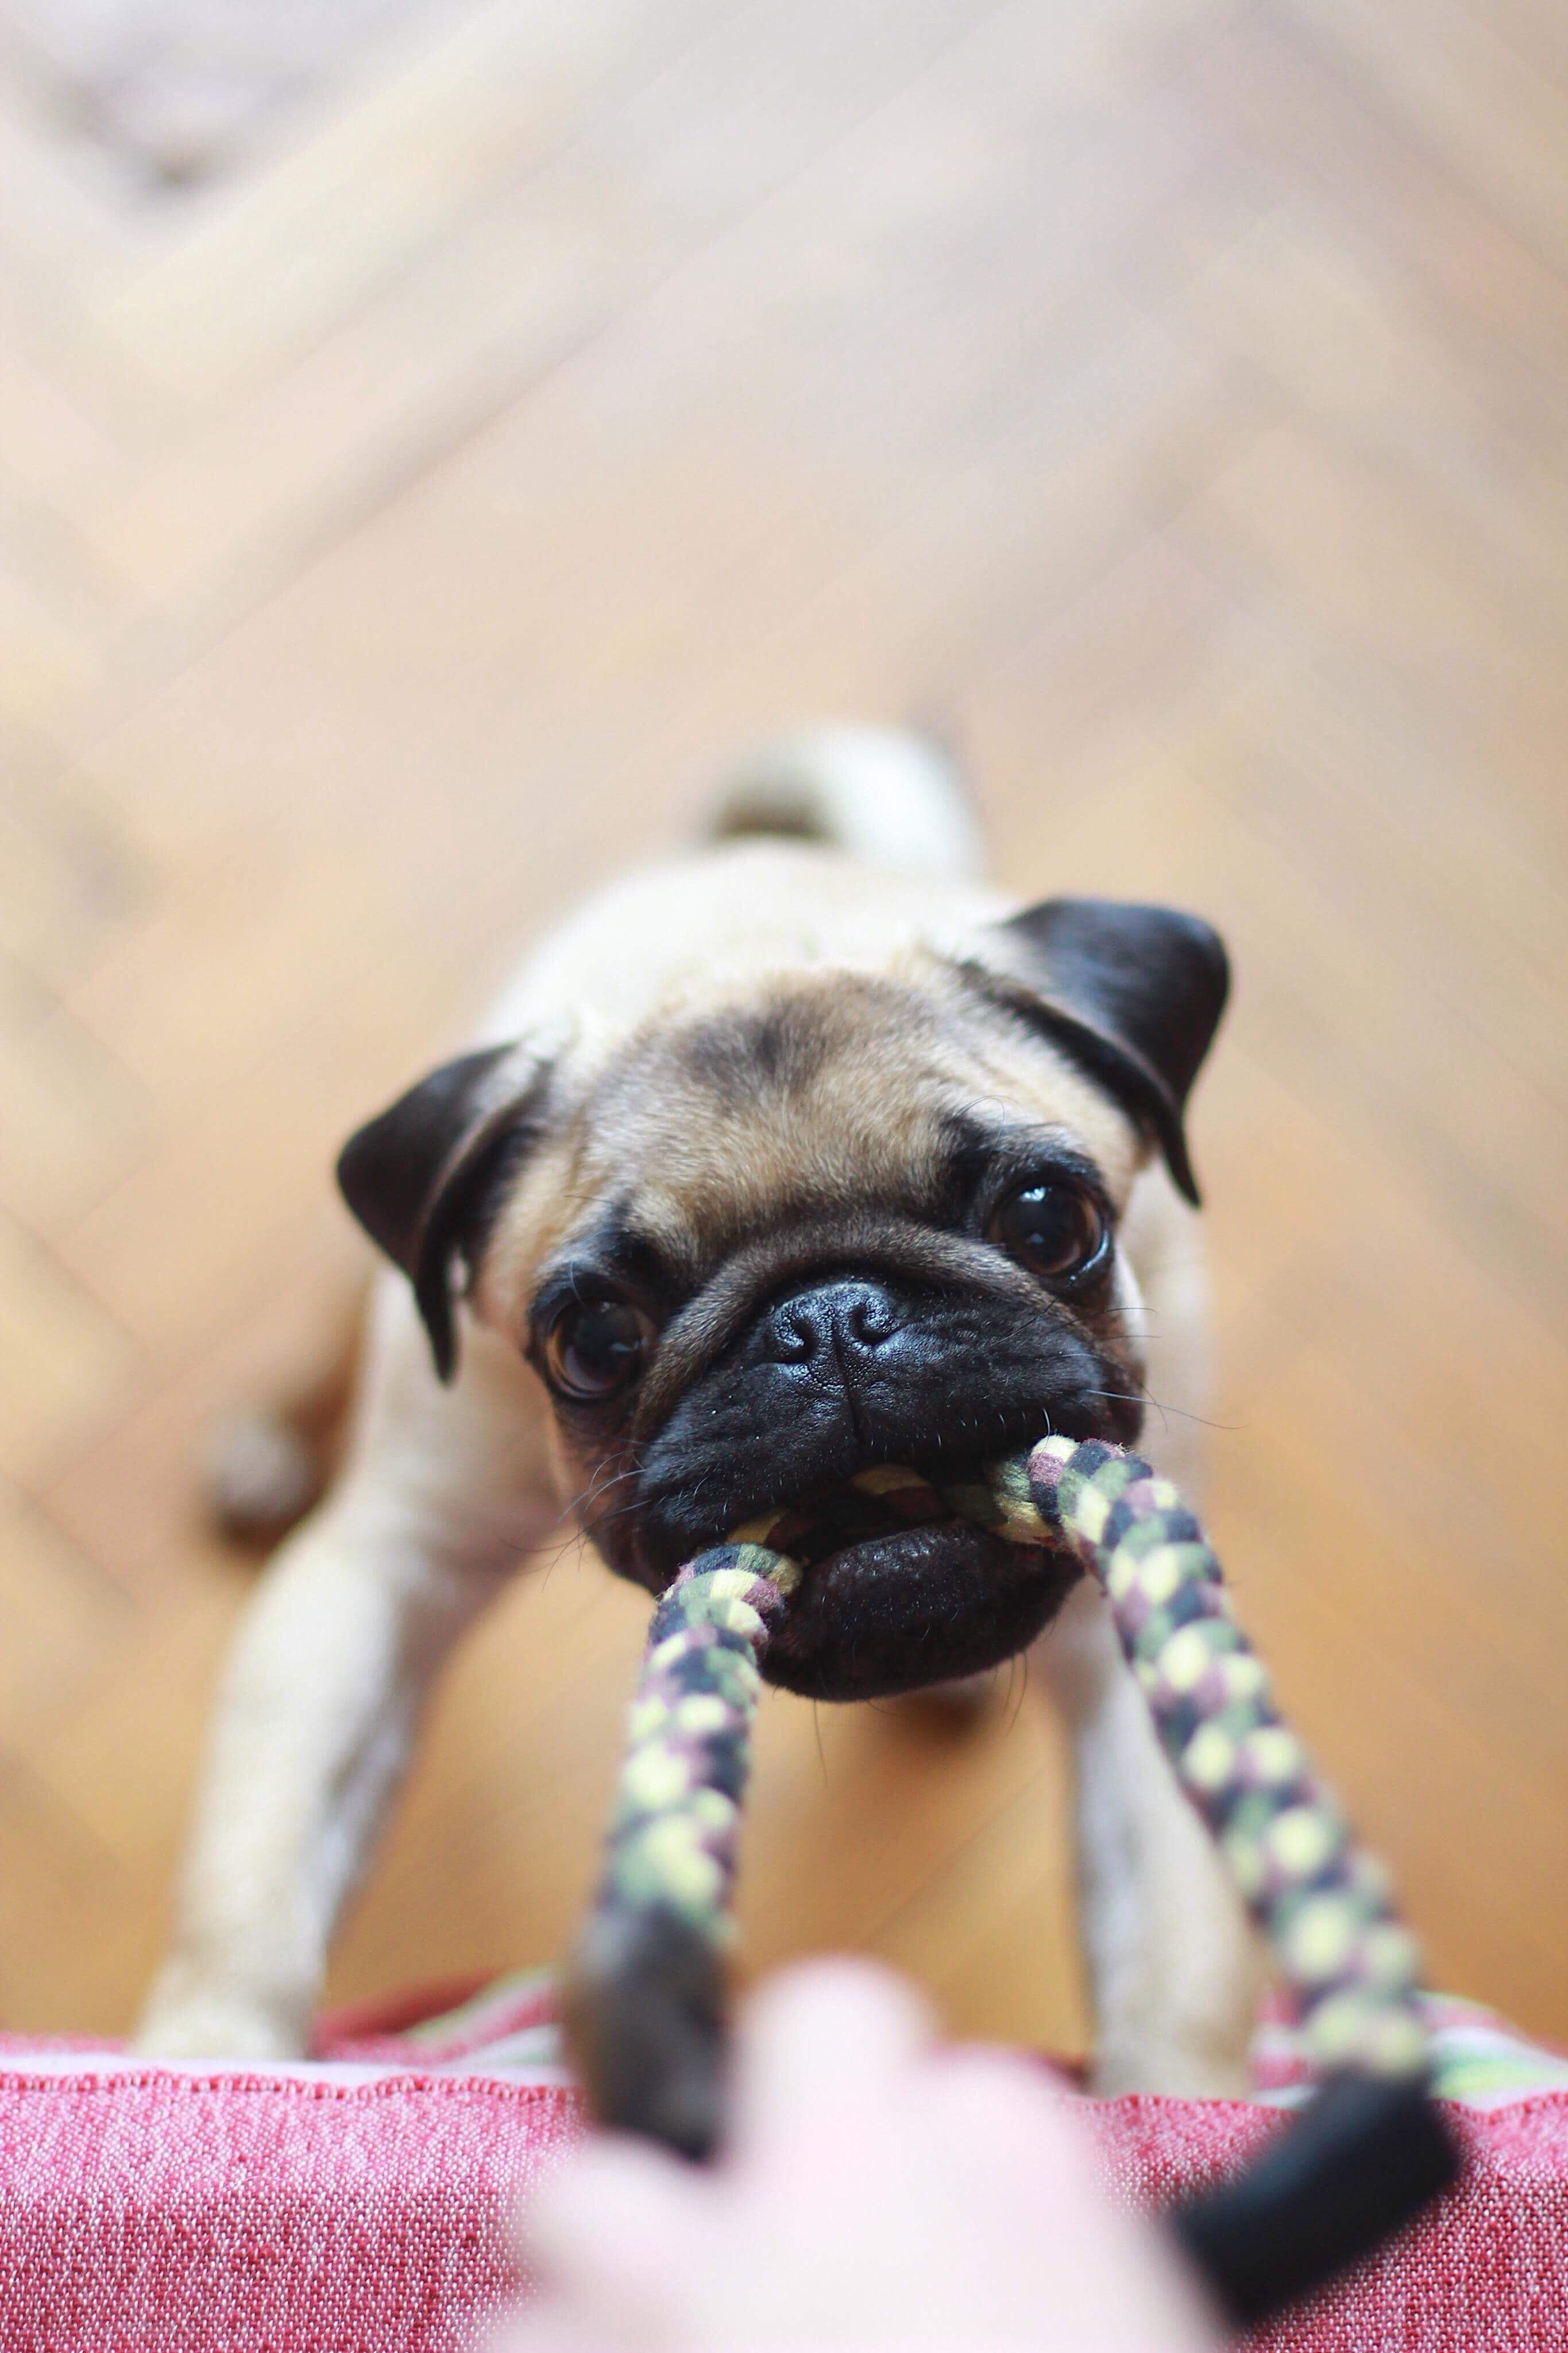 Pug with rope toy